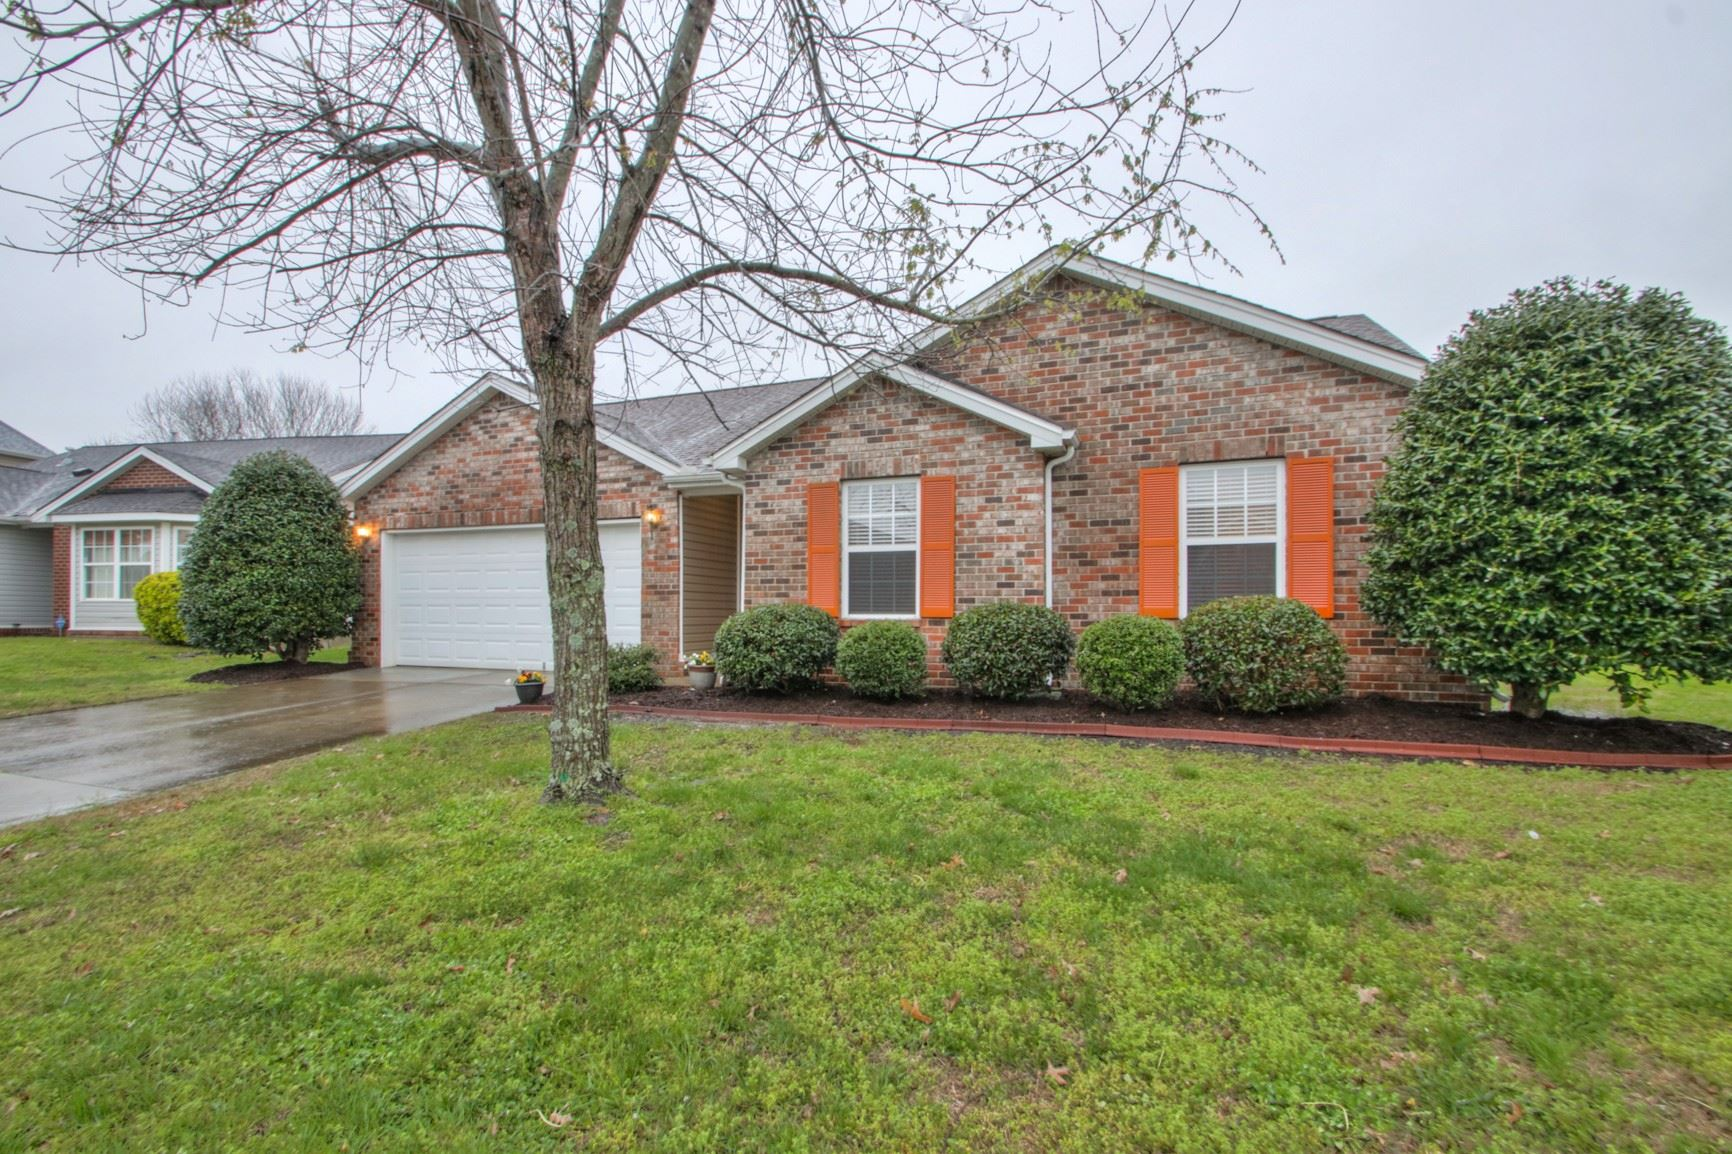 Photo of 1012 Lowrey Pl, Spring Hill, TN 37174 (MLS # 2135161)